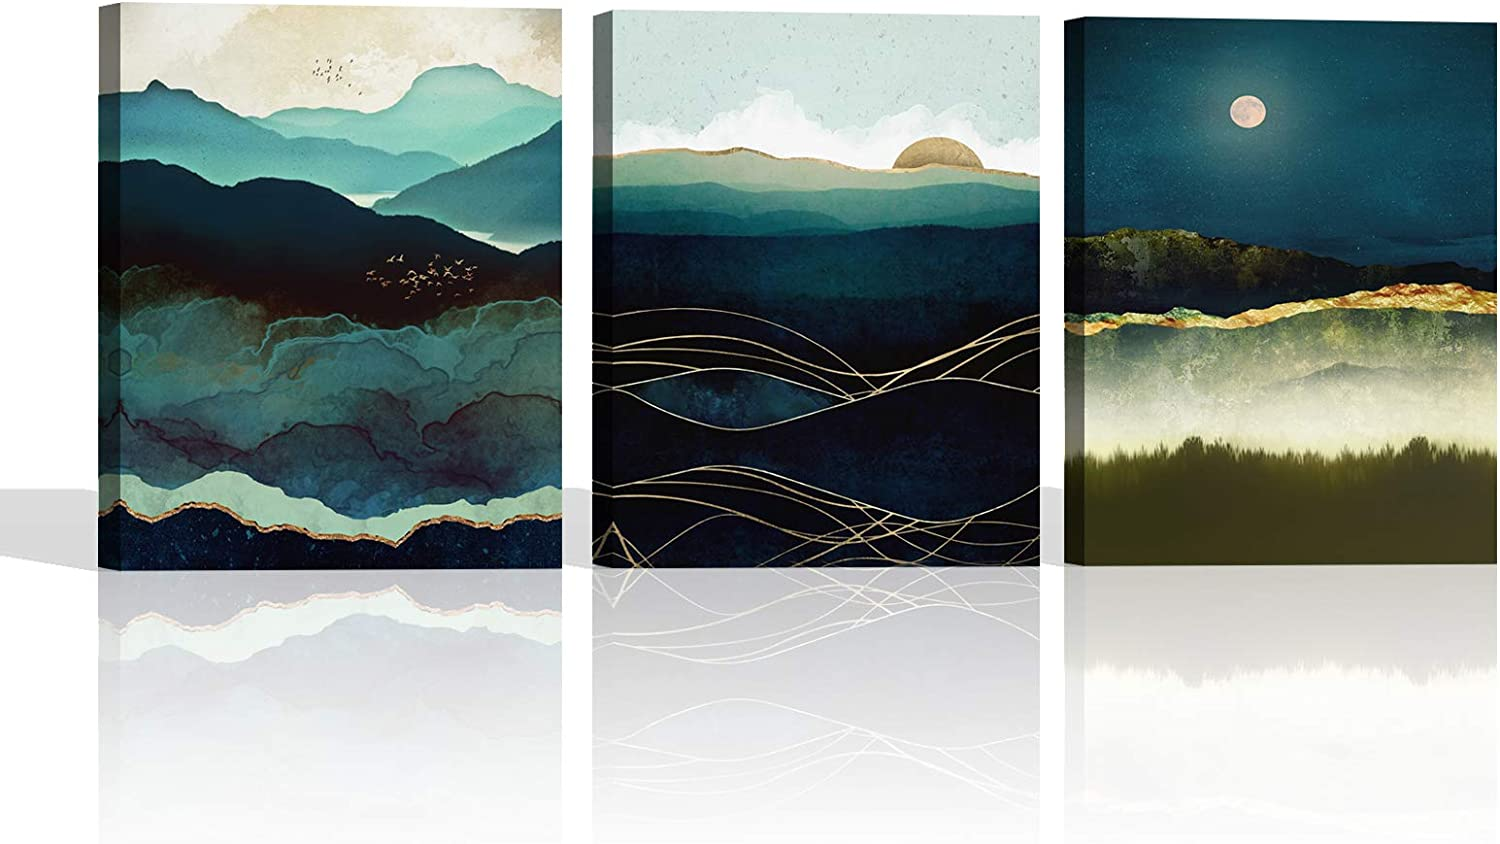 Abstract Geometric Canvas Wall Decor Green Mountains Wall Art Moonlight Nature Landscape Wall Art for Living Room Bathroom Home Decor